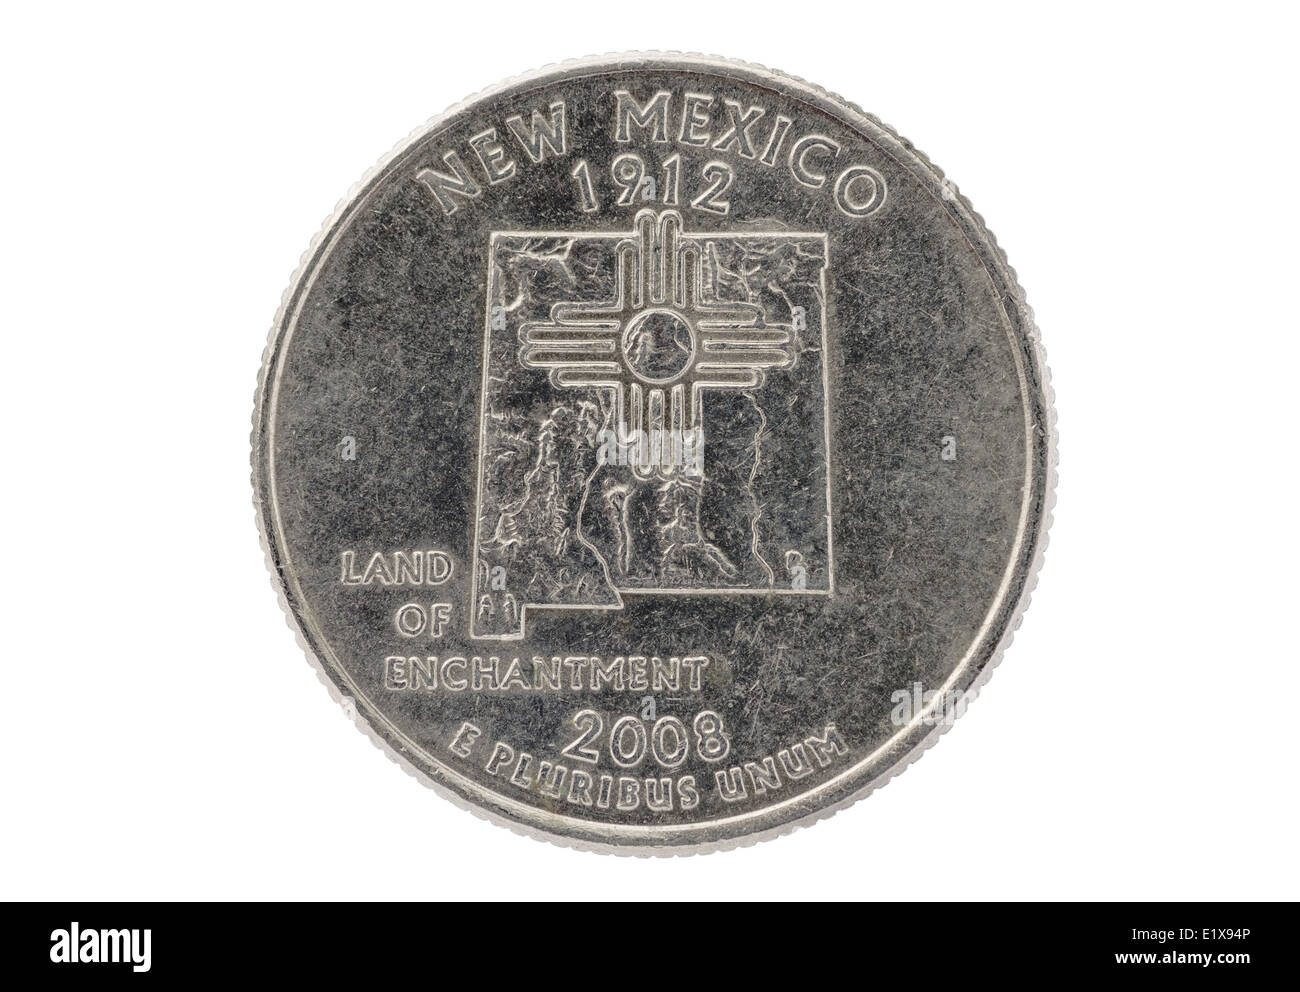 New Mexico commemorative state quarter coin isolated on white - Stock Image